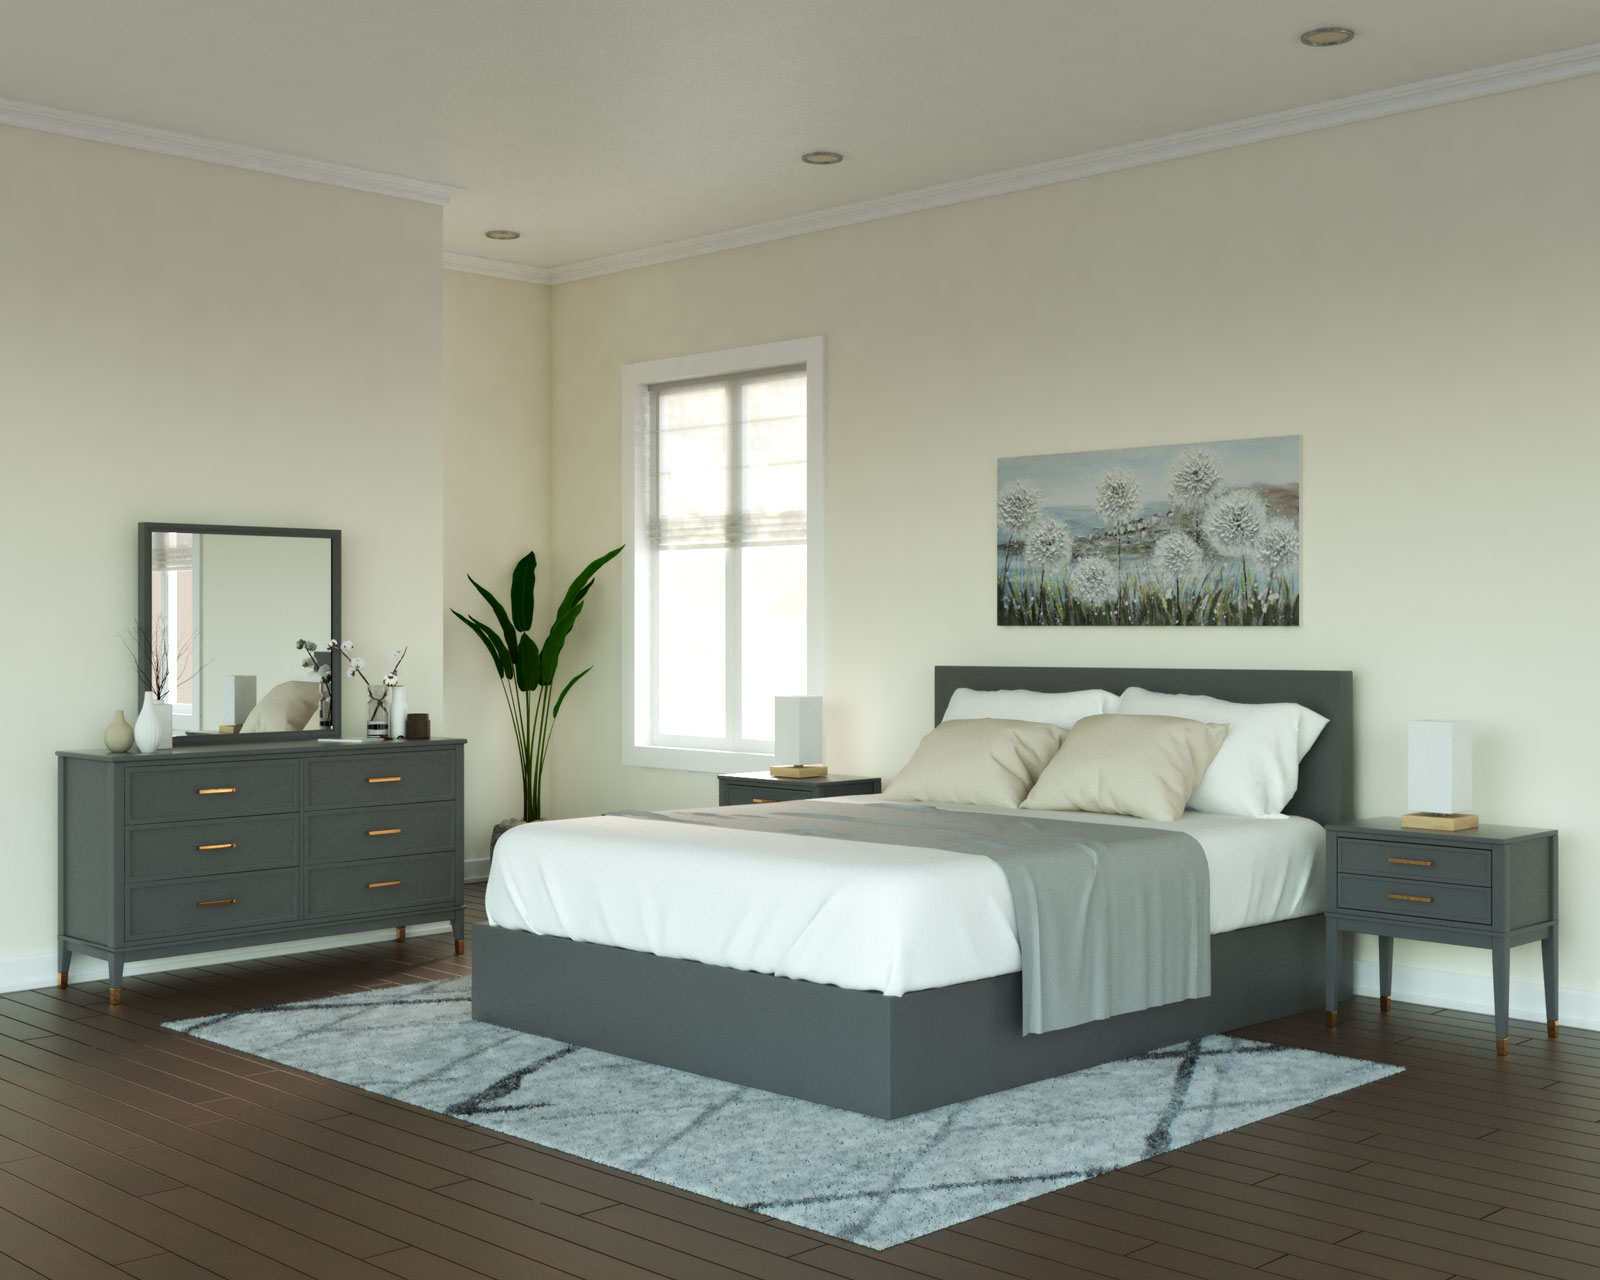 Ivory walls with gray bedroom furniture